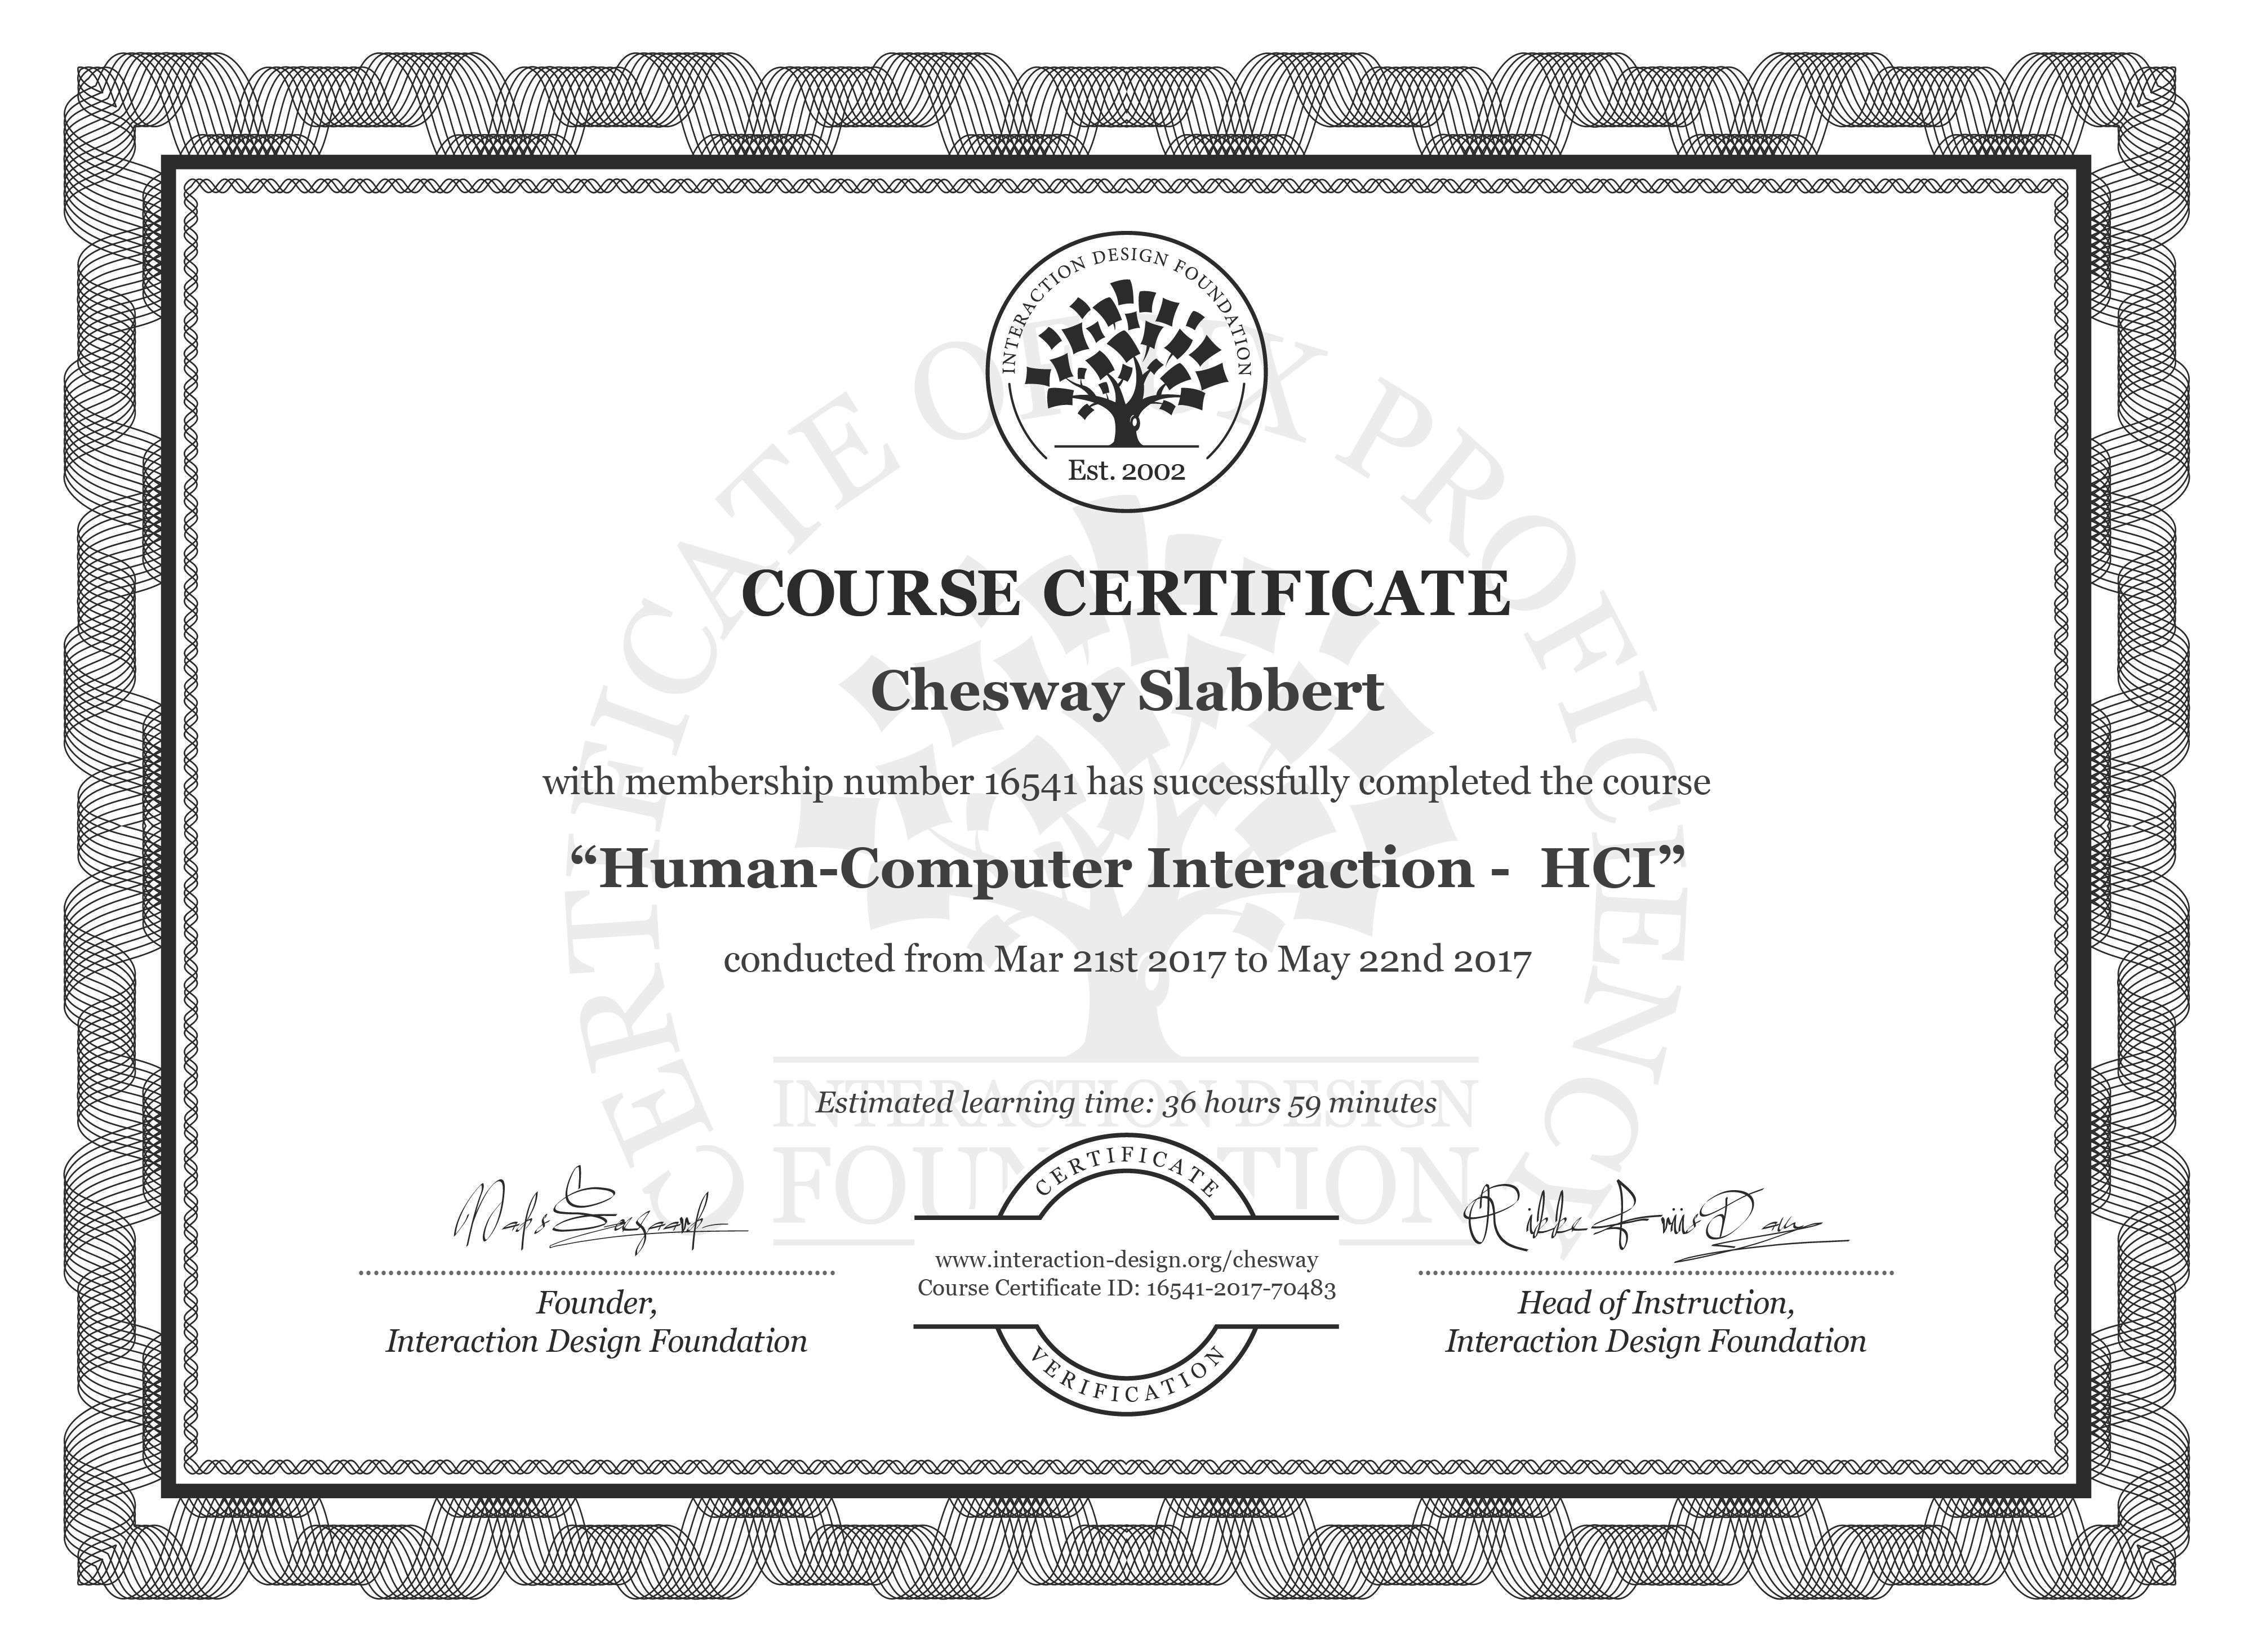 Chesway Slabbert: Course Certificate - Human-Computer Interaction -  HCI